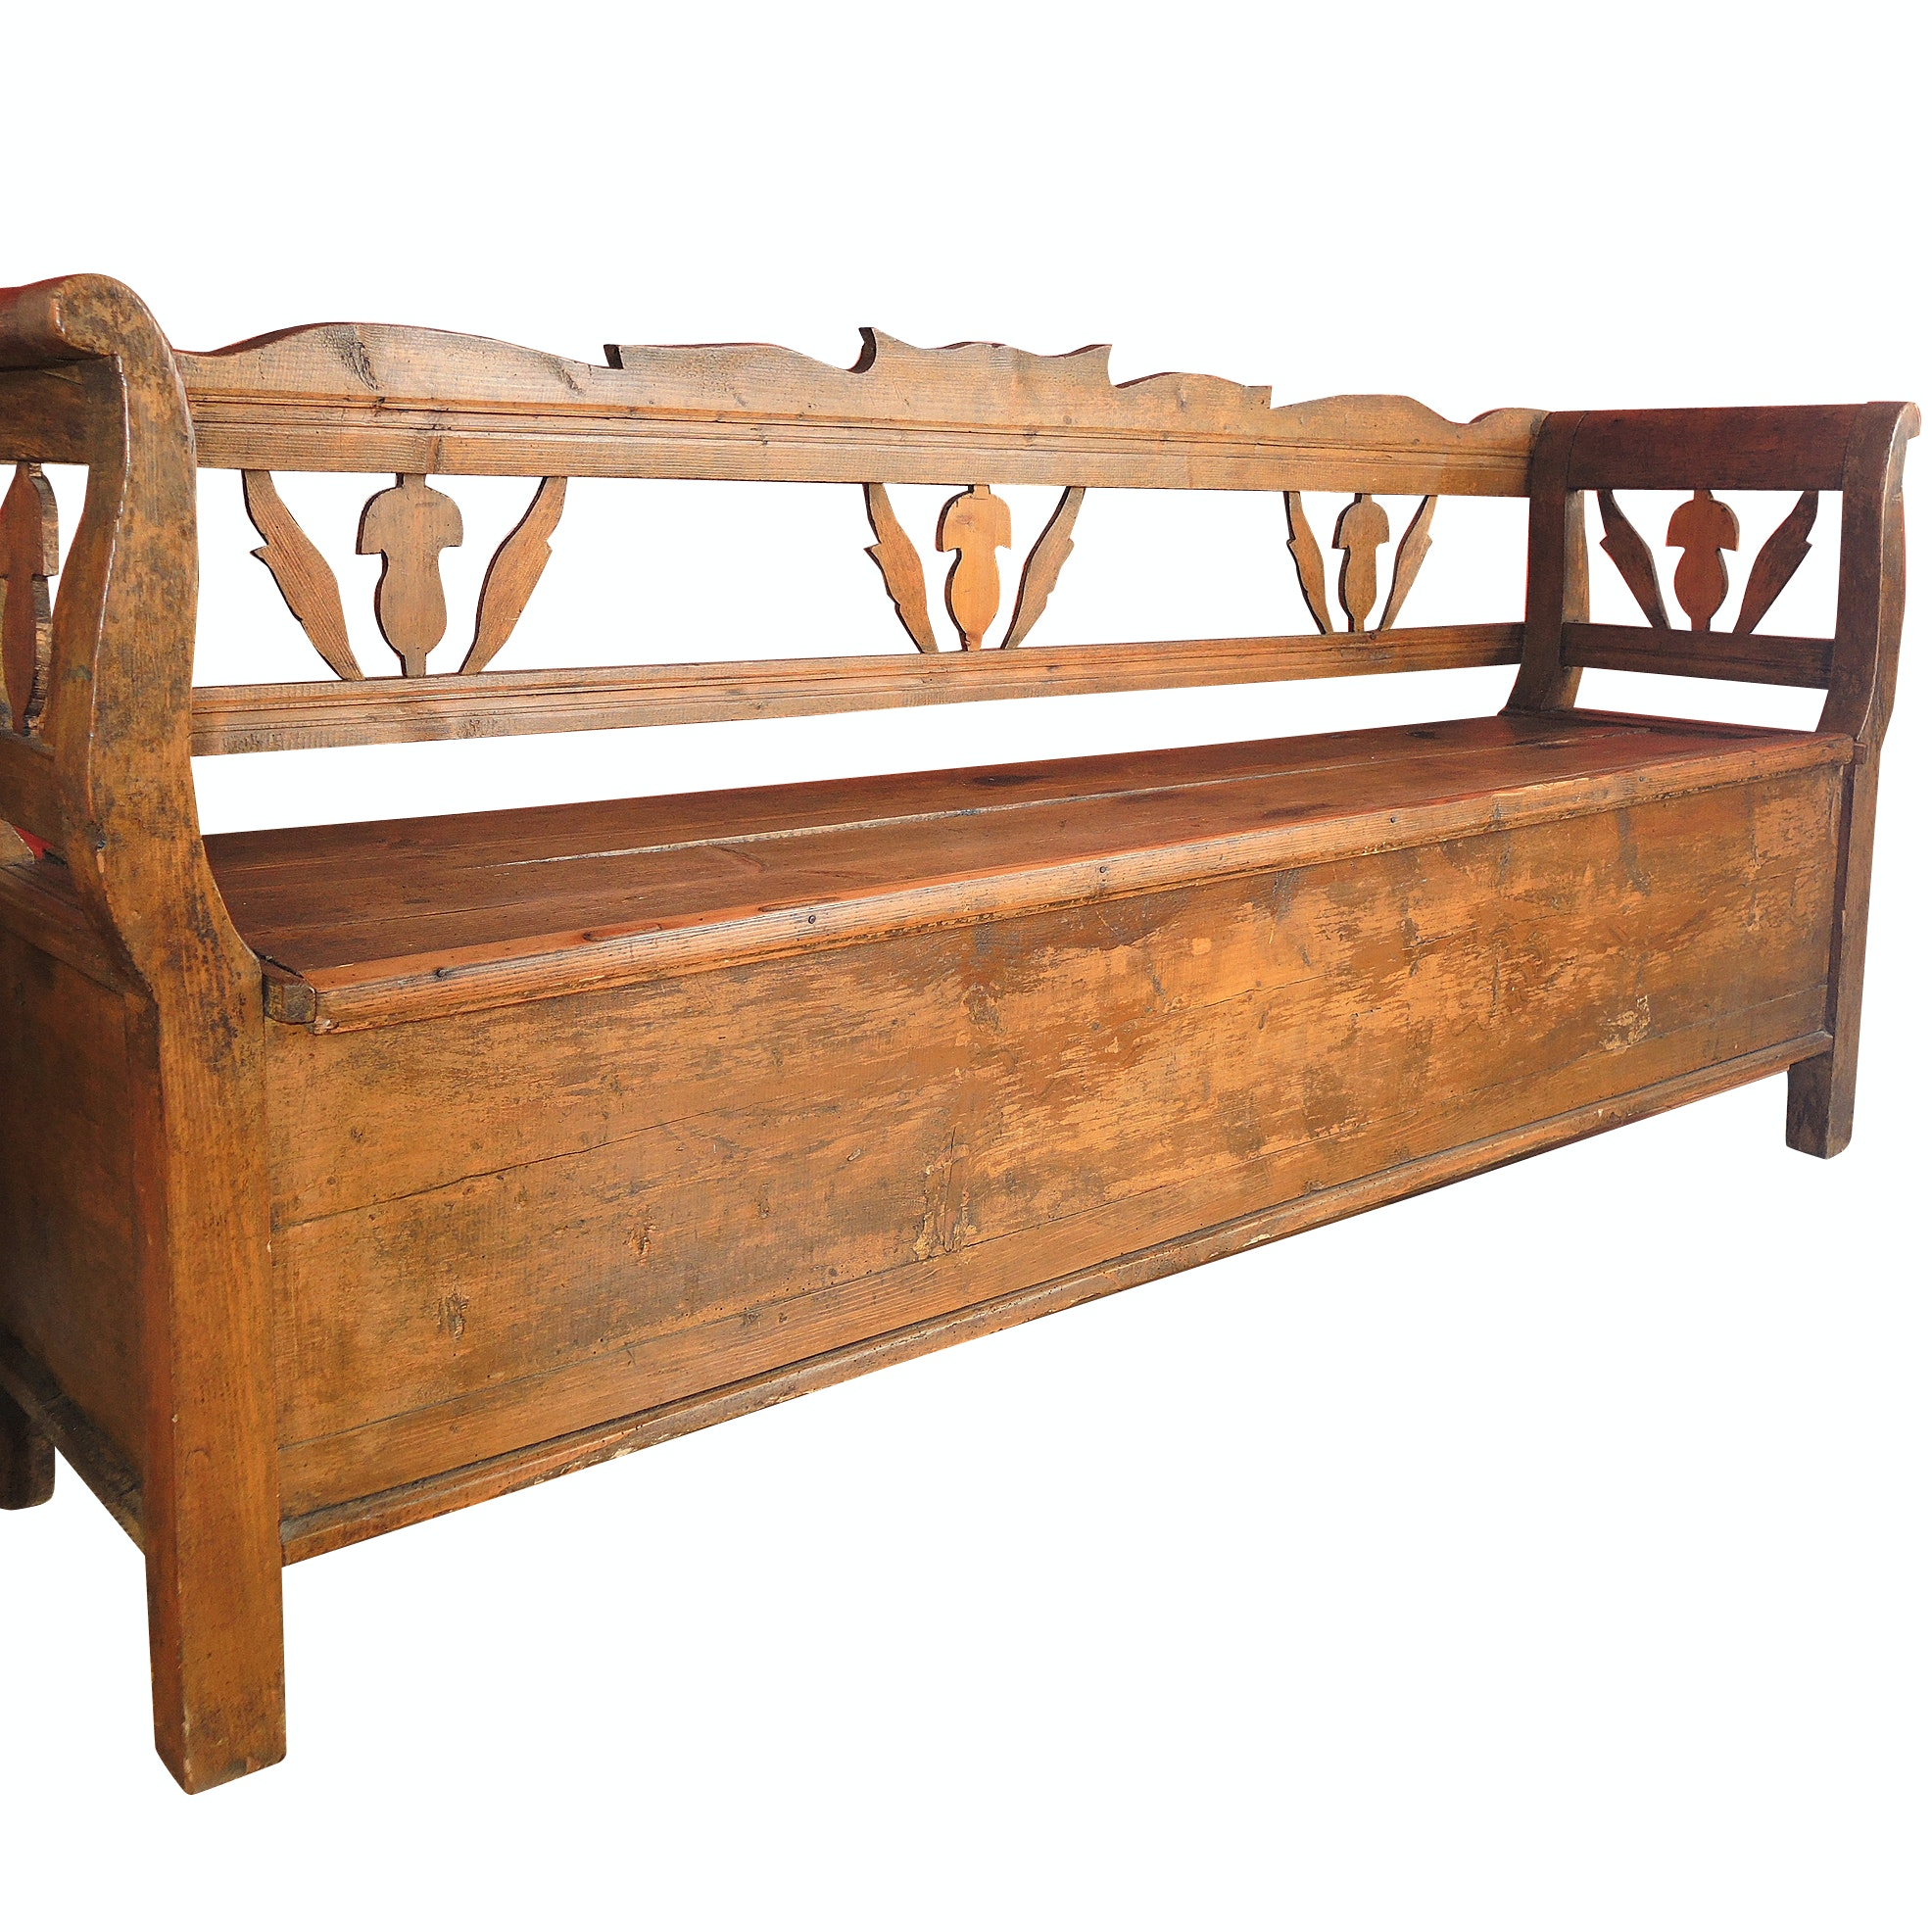 Antique Wooden Bench With Storage Seat  Antique Wooden Bench47